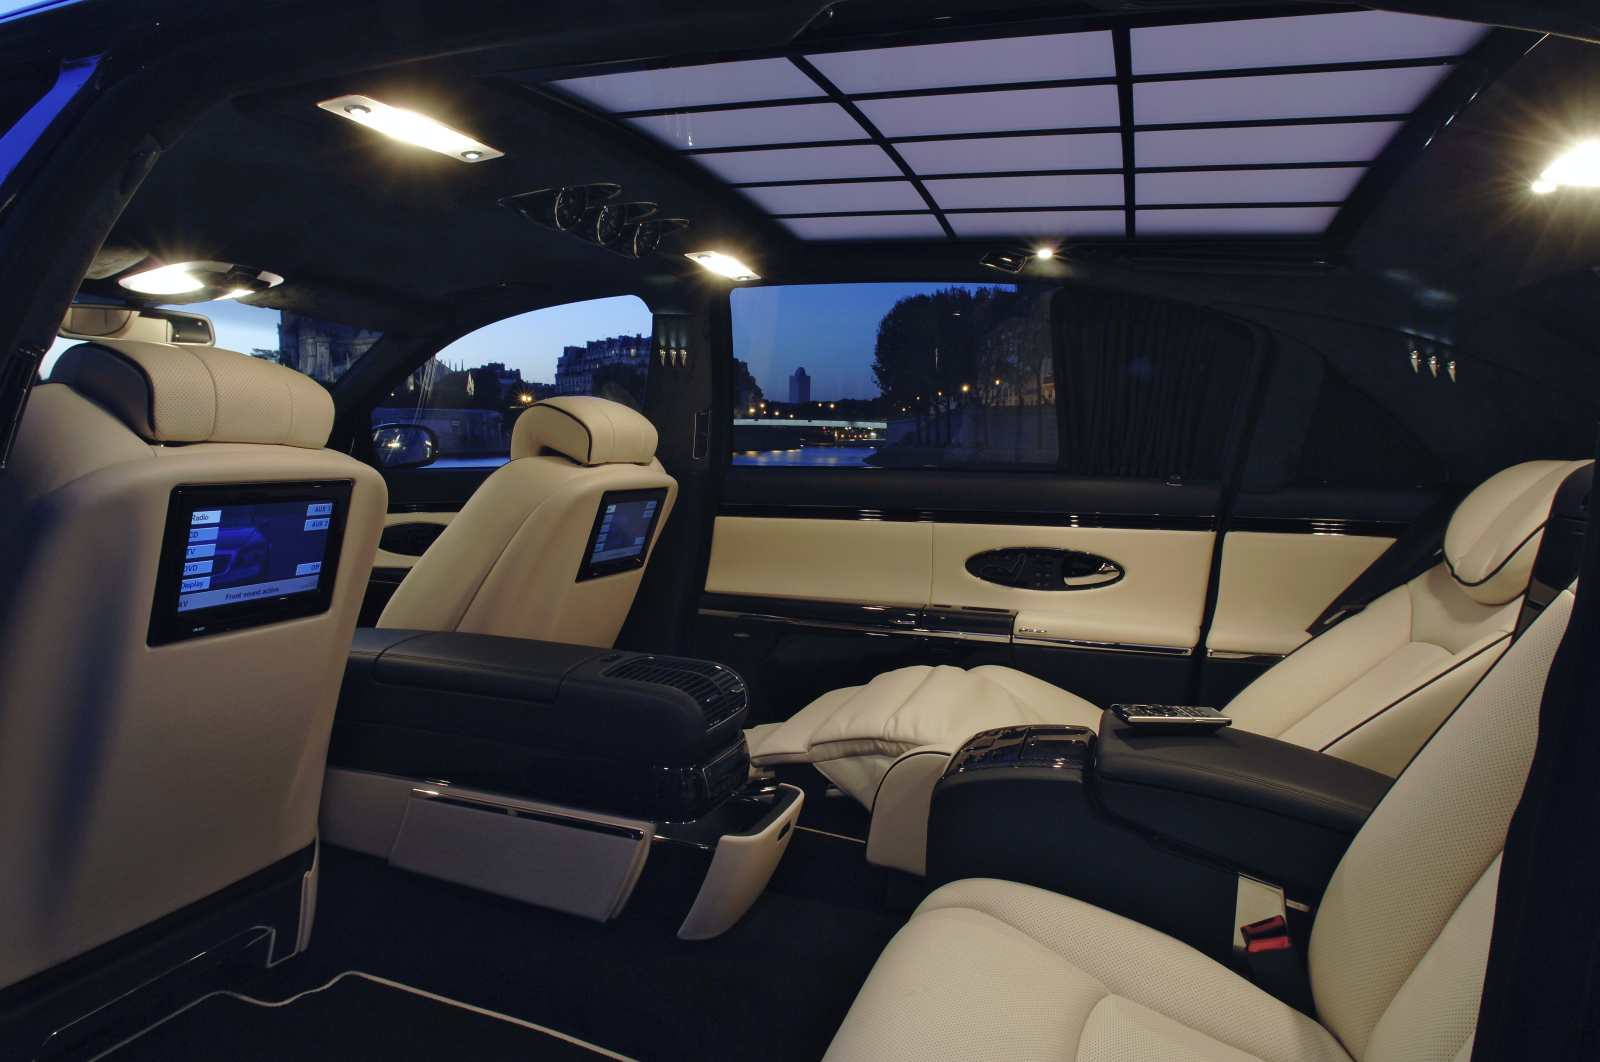 fraude fiscal en coches de lujo. Black Bedroom Furniture Sets. Home Design Ideas